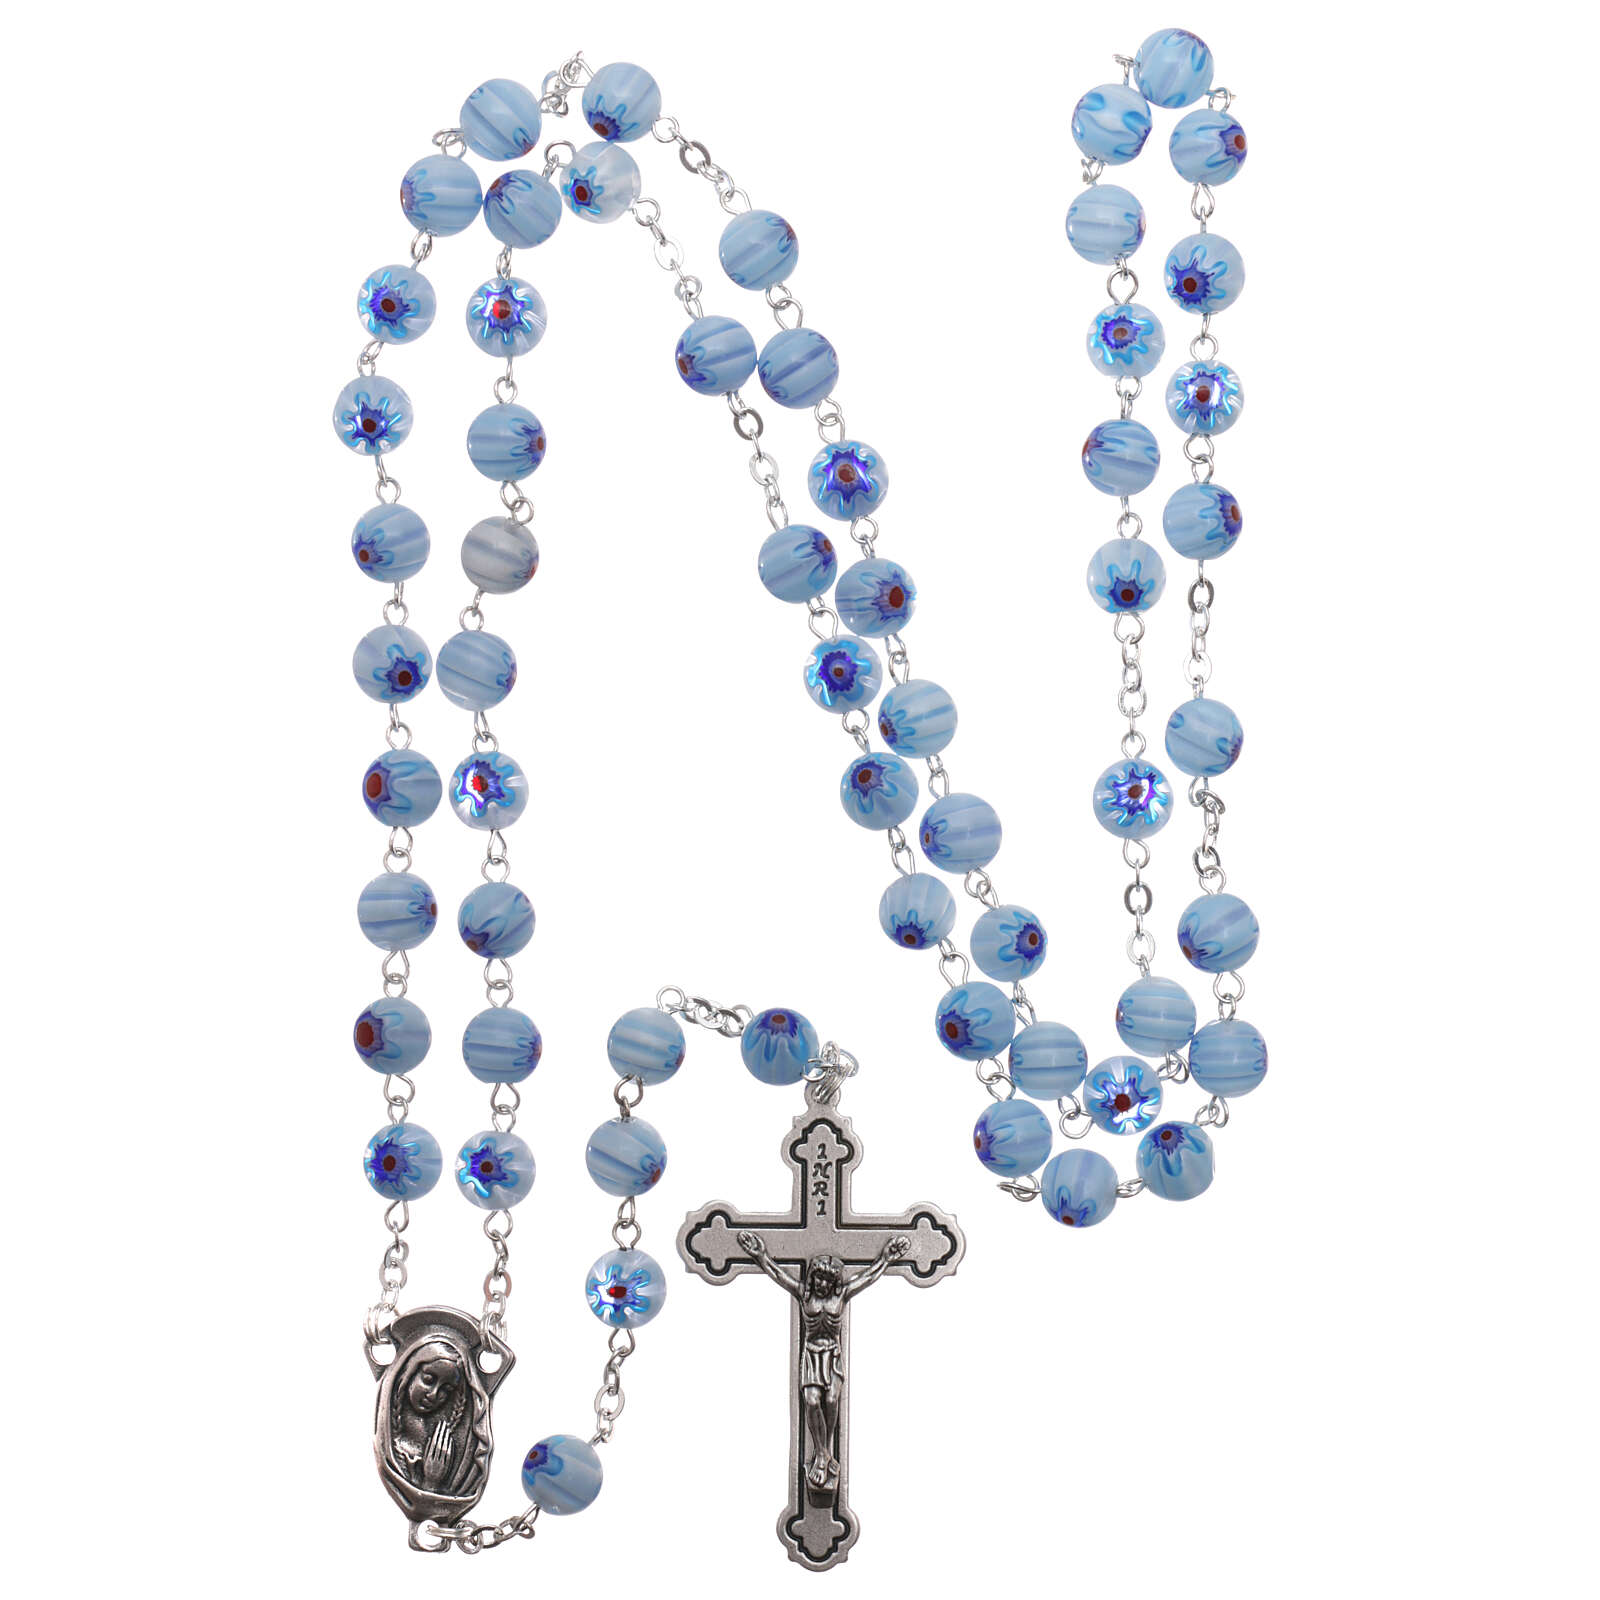 Glass rosary with water color beads with floral pattern and stripes in murrina style 8 mm 4